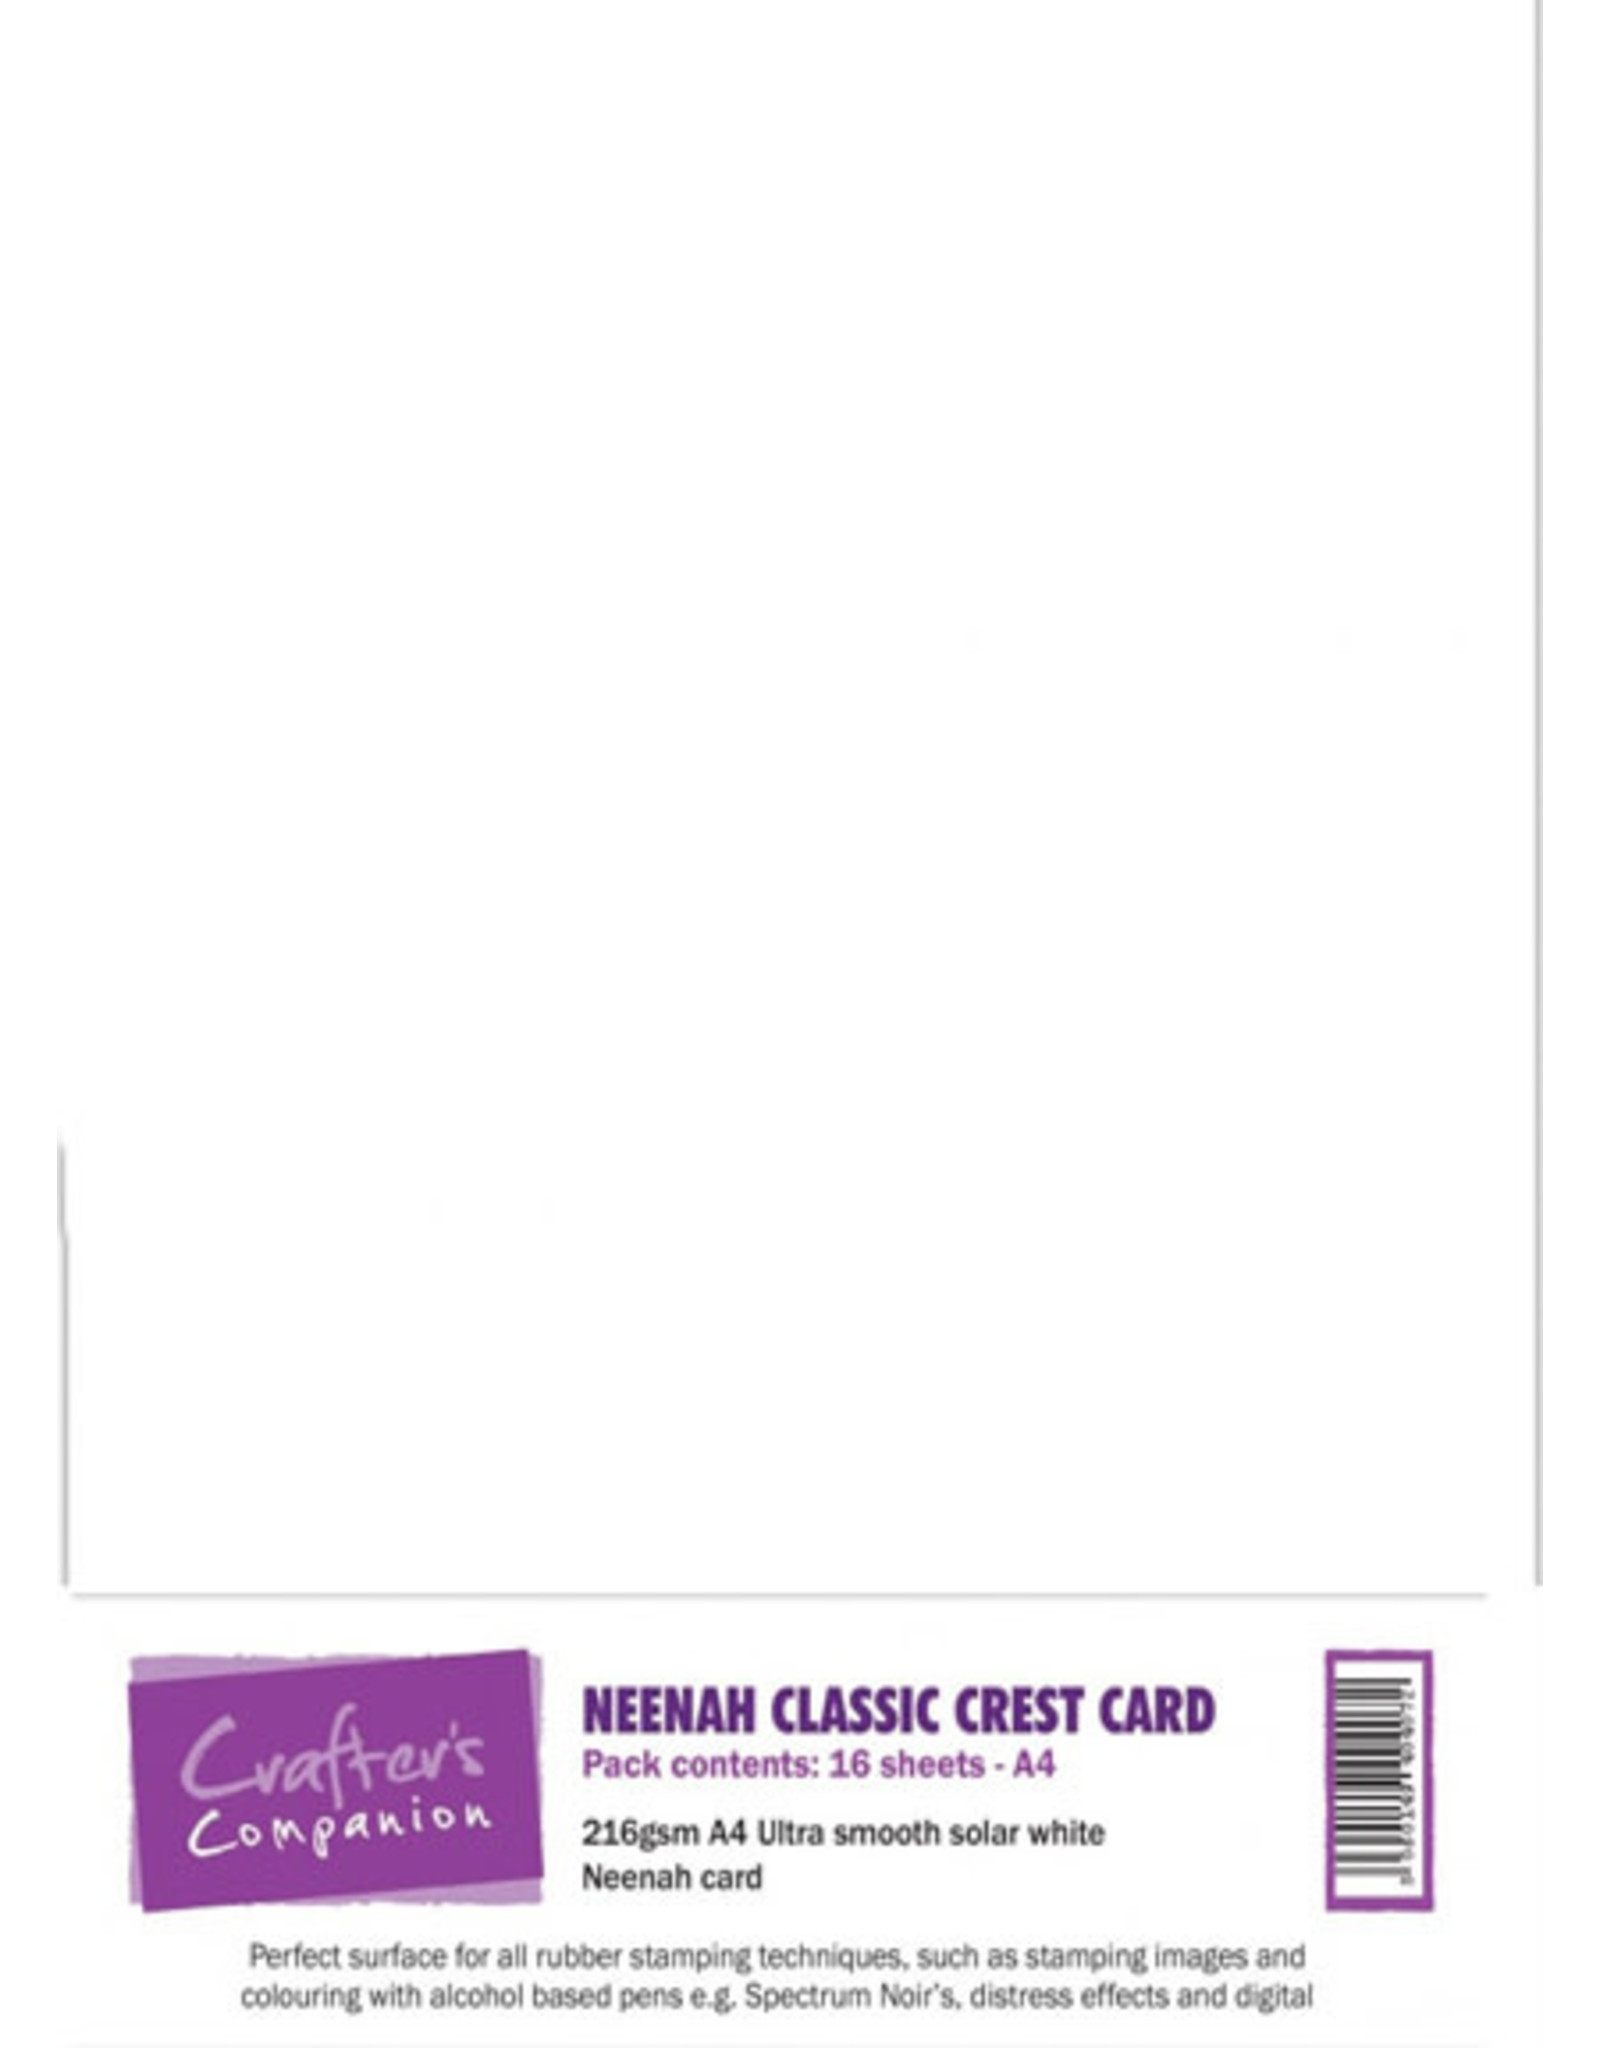 crafter's companion Neenah Classic Crest Card A4